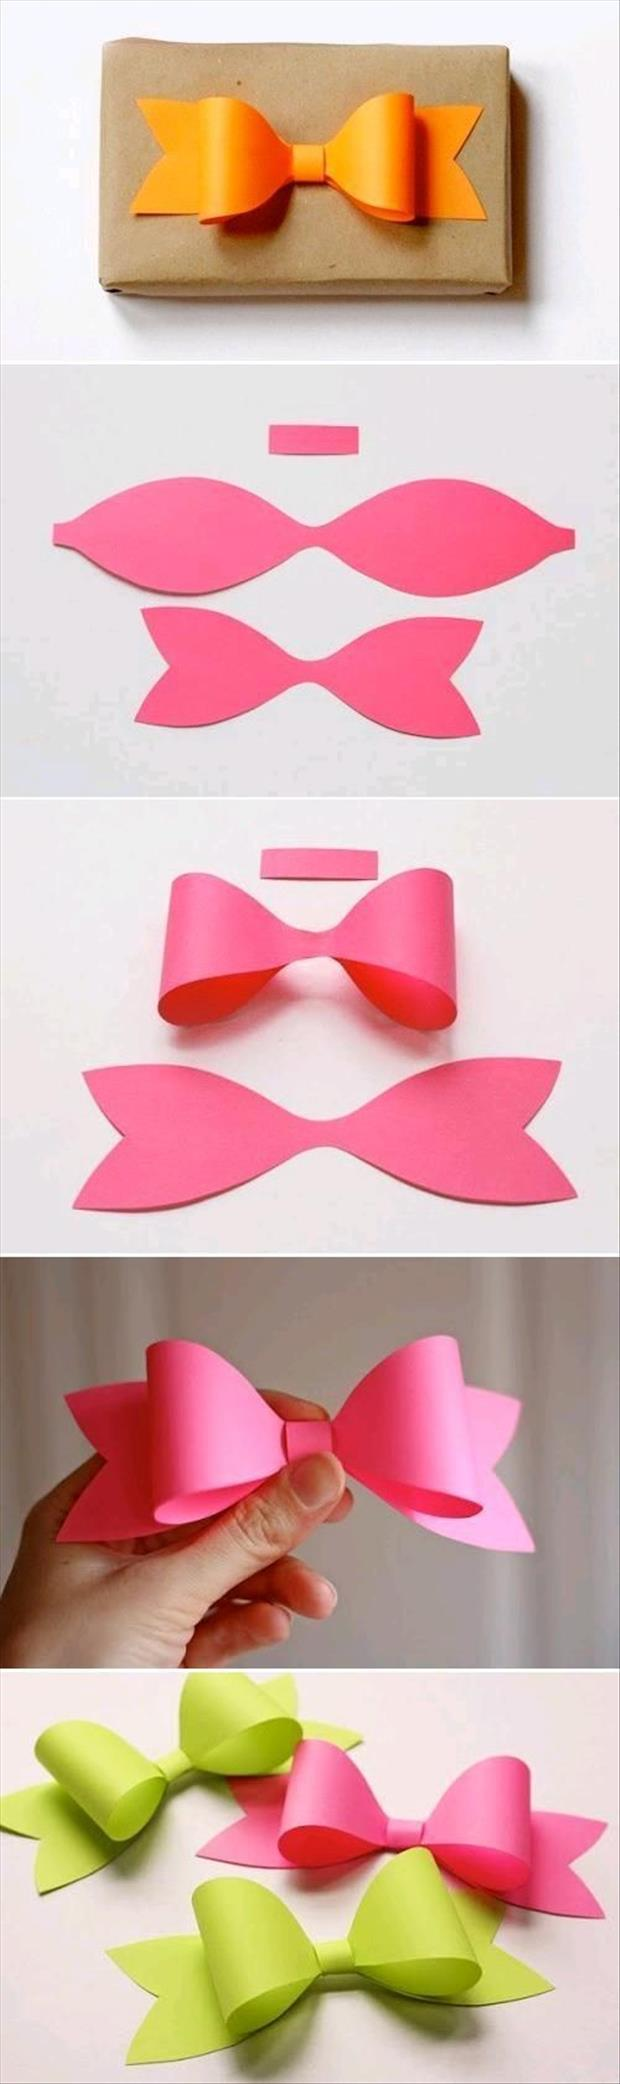 do it yourself craft ideas (7)